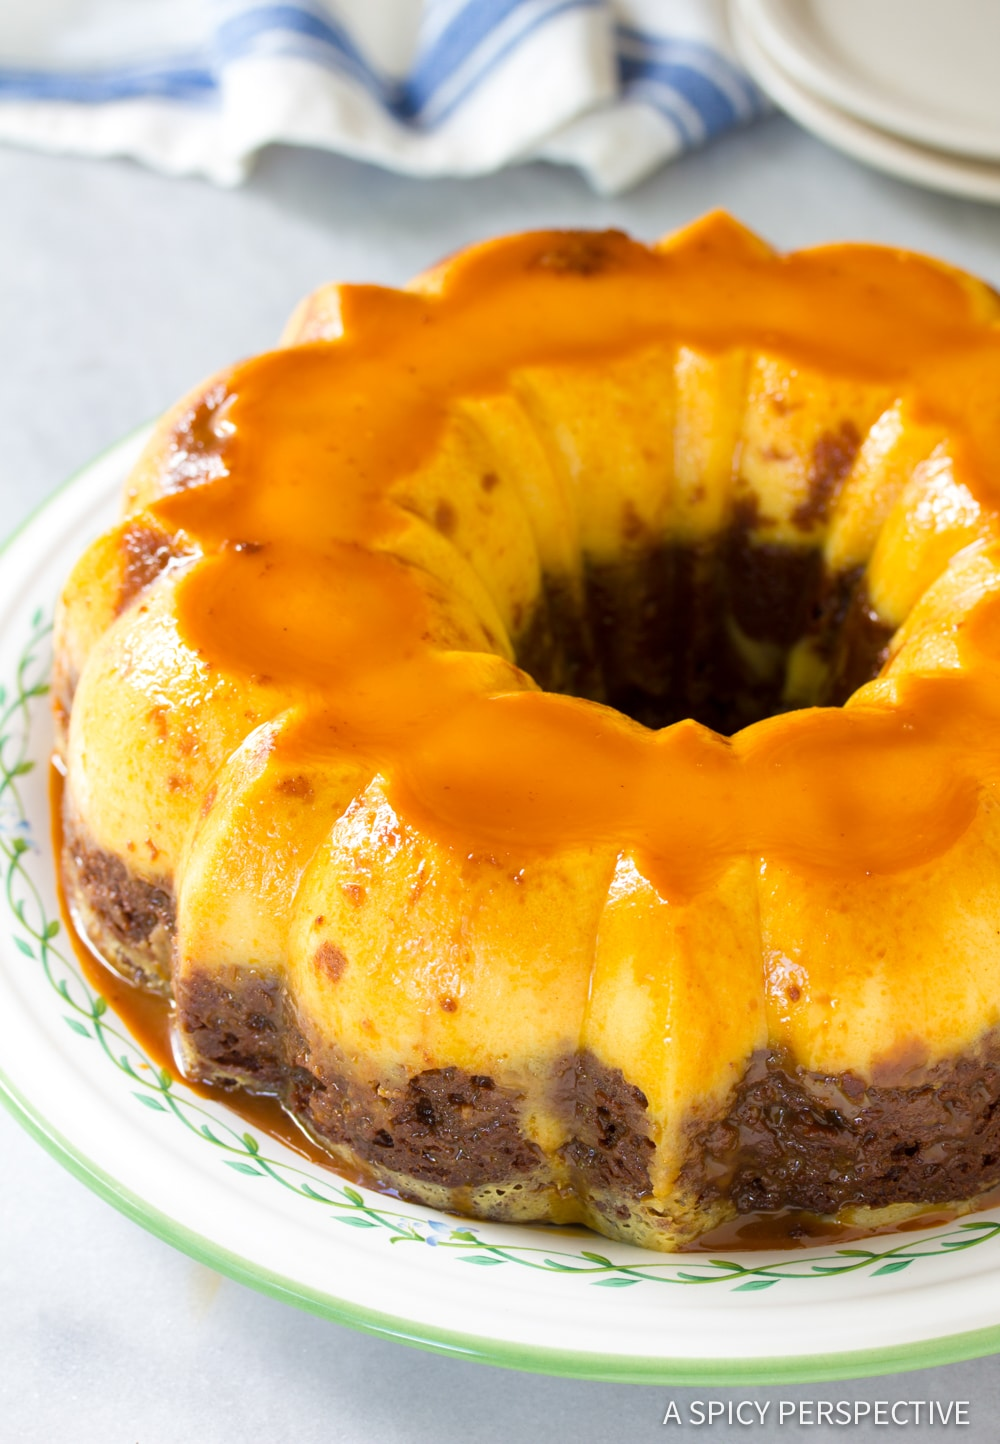 Chocoflan Impossible Cake Recipe #ASpicyPerspective